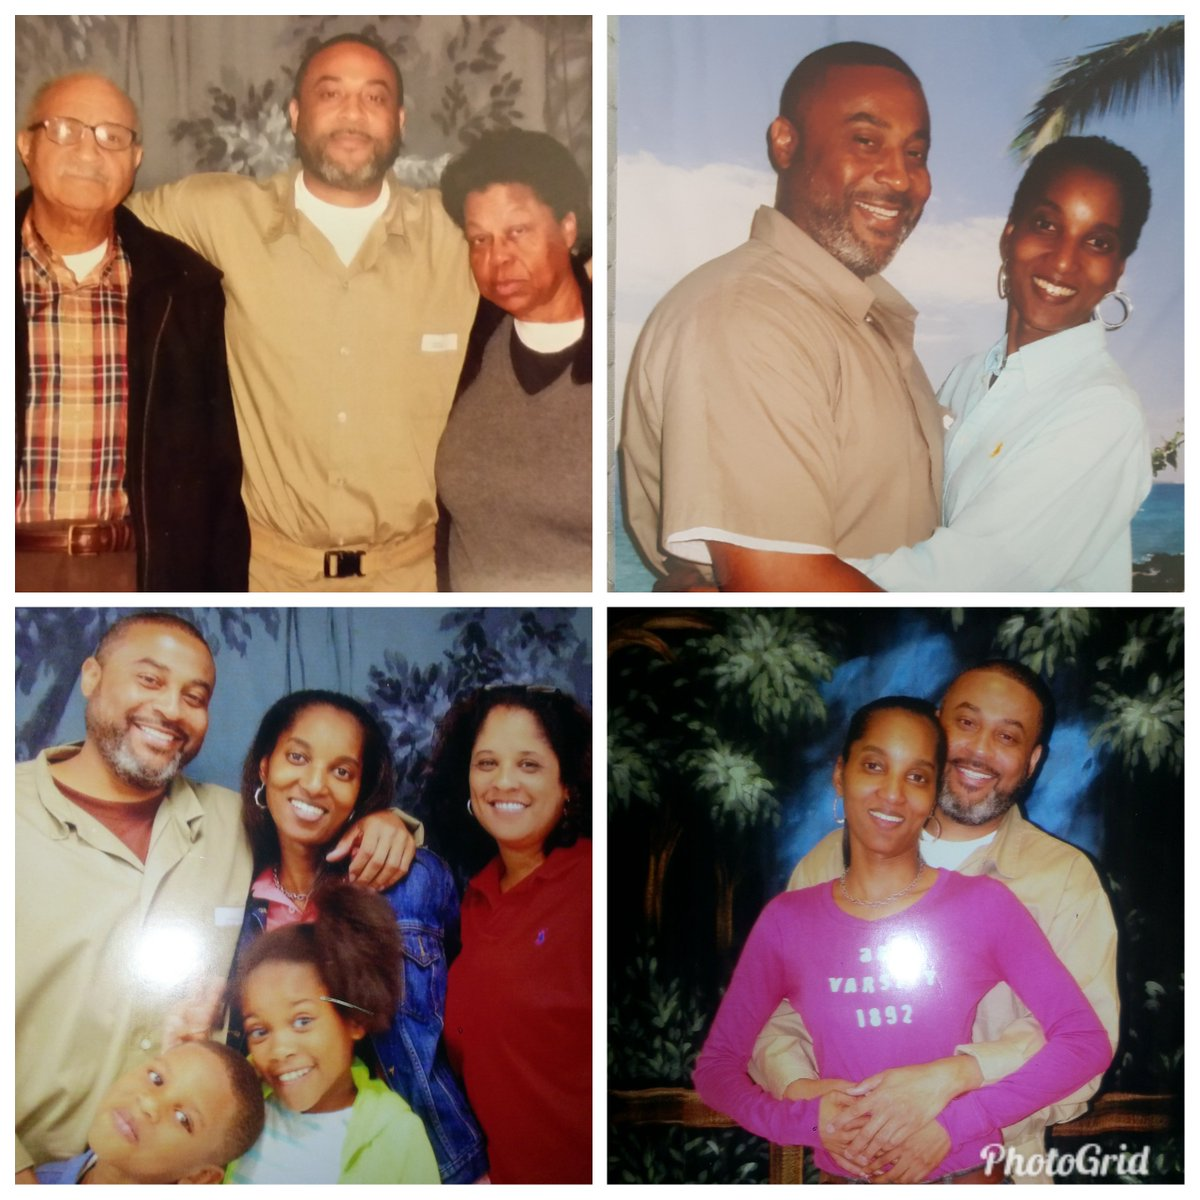 David Barren/family is in a holding pattern waiting to embrace, rejoice and ENJOY LIFE!  Altho he received clemency from @POTUS44 his outdate is 2034! @AnricaC and David need #ClemencyNow @realDonaldTrump @jaredkushner @RachelBarkow @Oslerguy @EvidenceProf @TopekaKSam @VanJones68